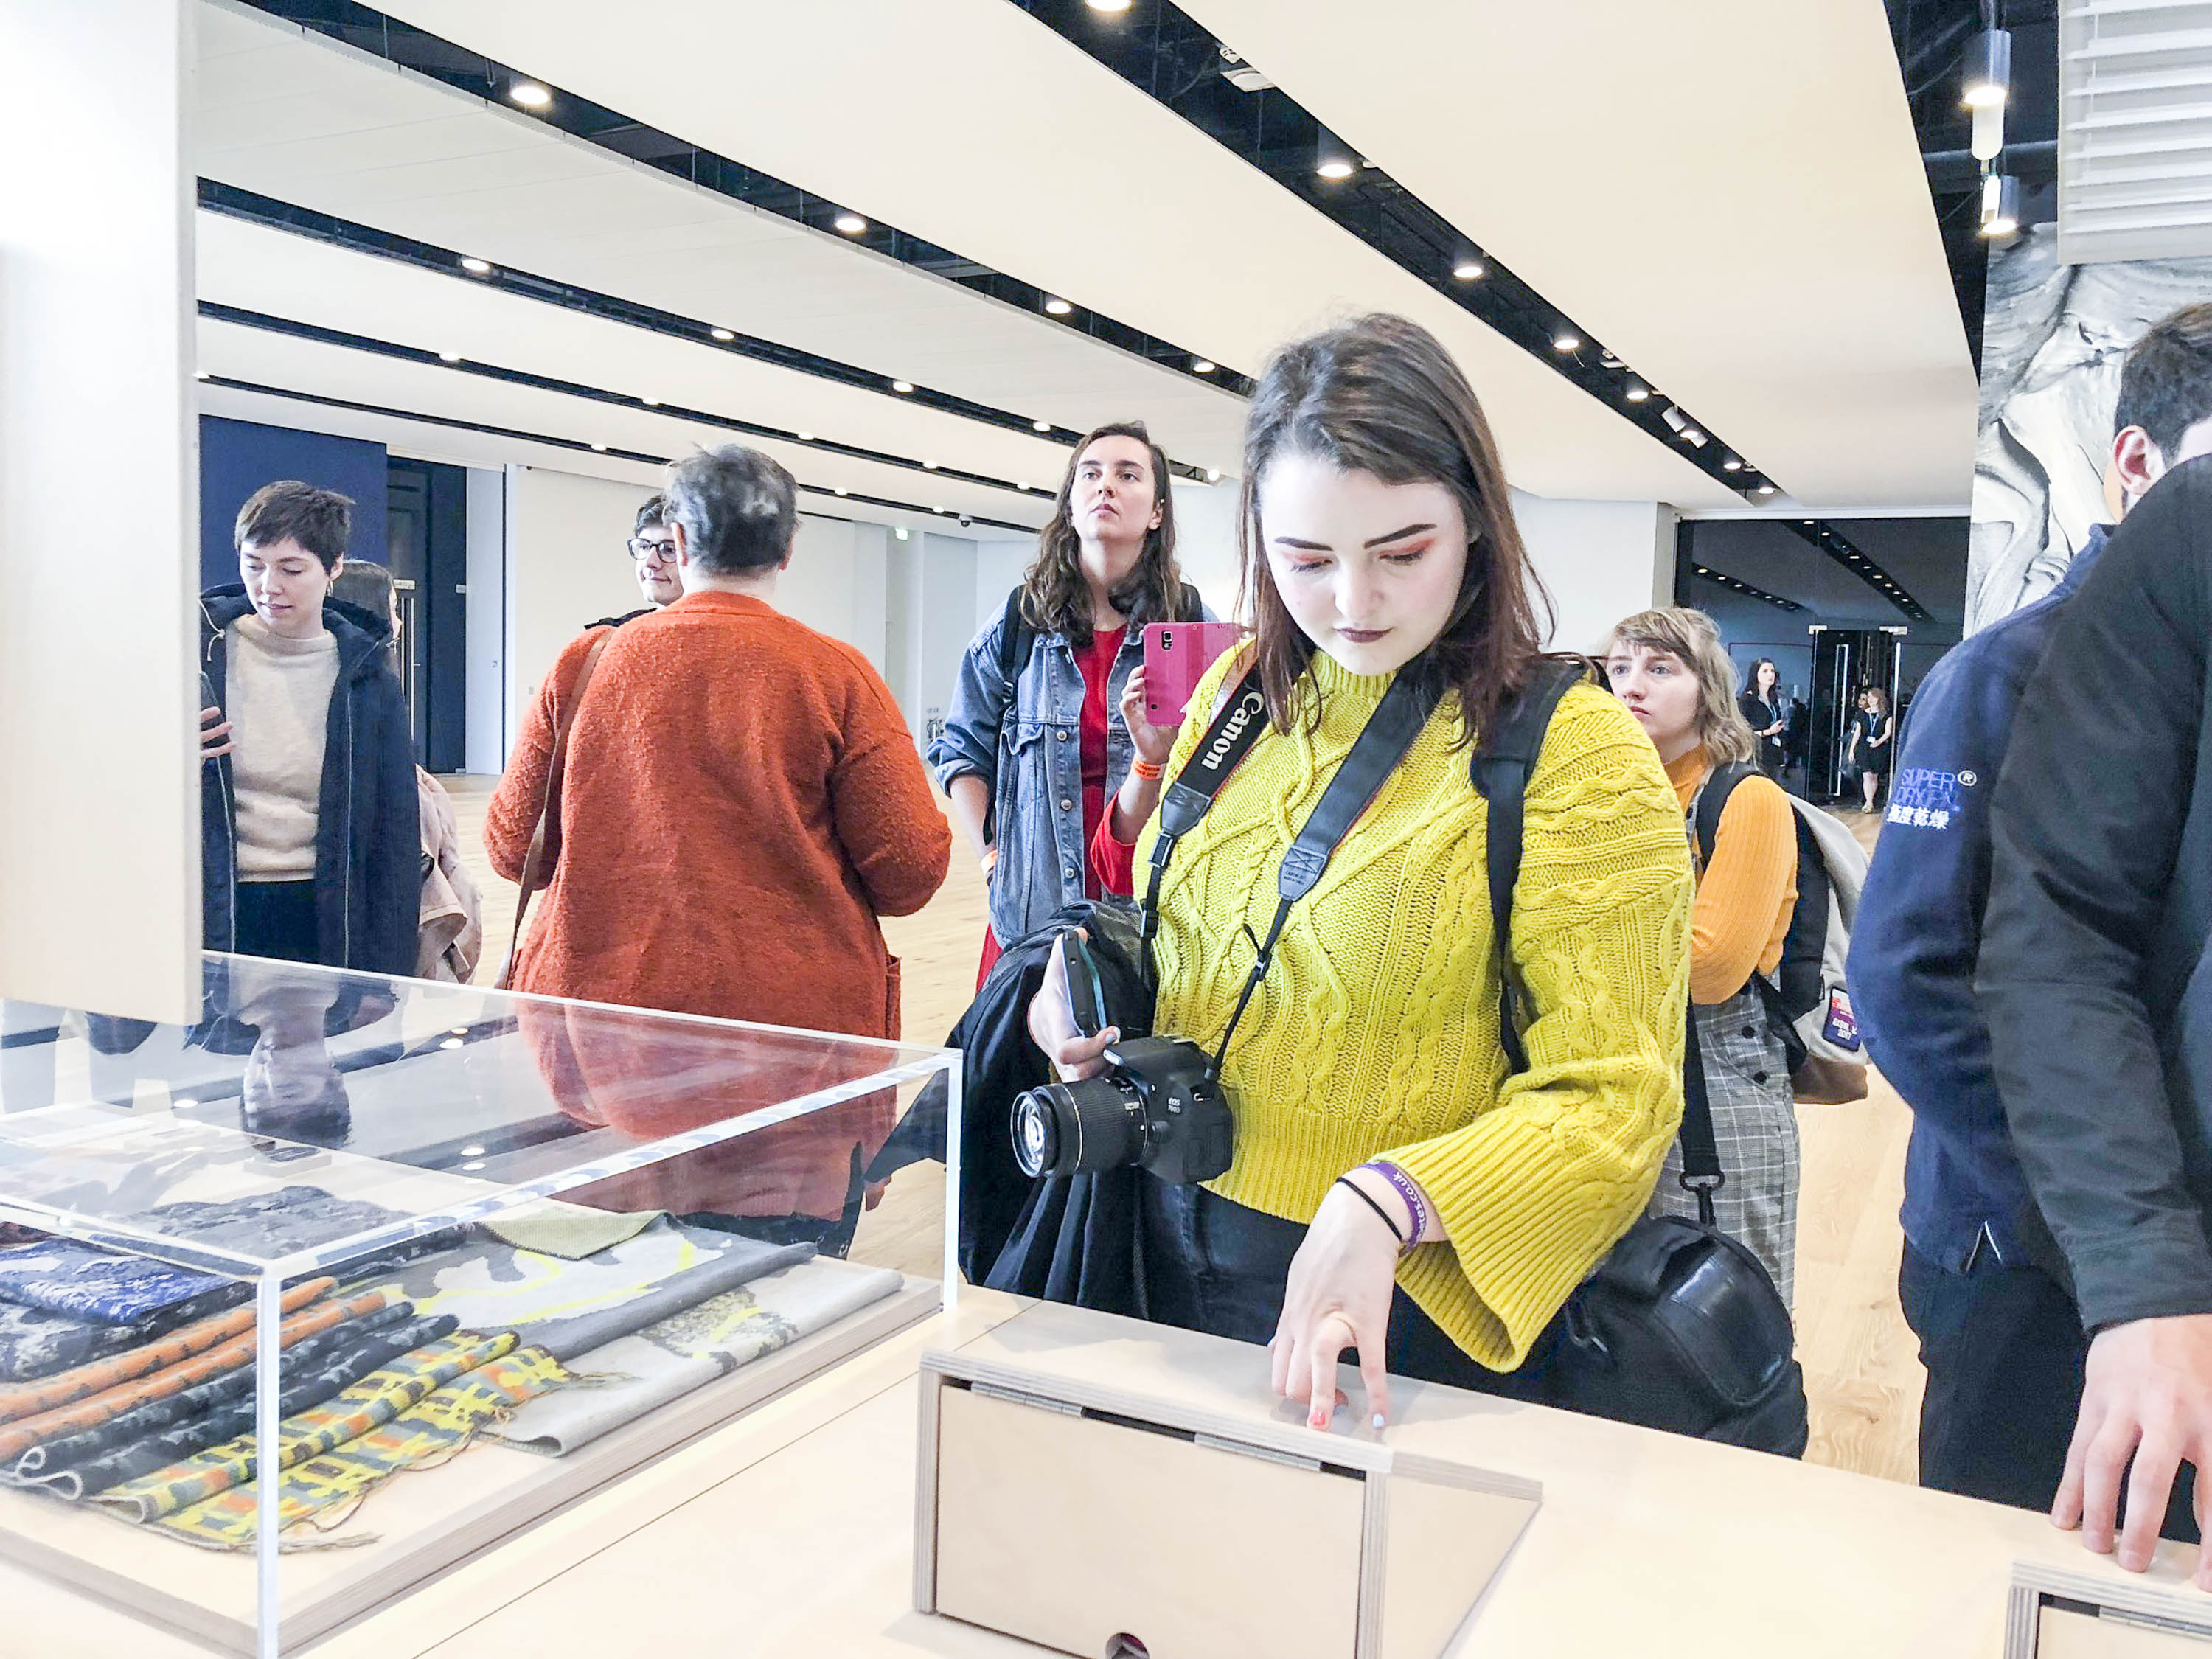 In the Michelin Galleries at V&A Dundee, visitors look at the Shetland exhibits as part of the Scottish Design Relay